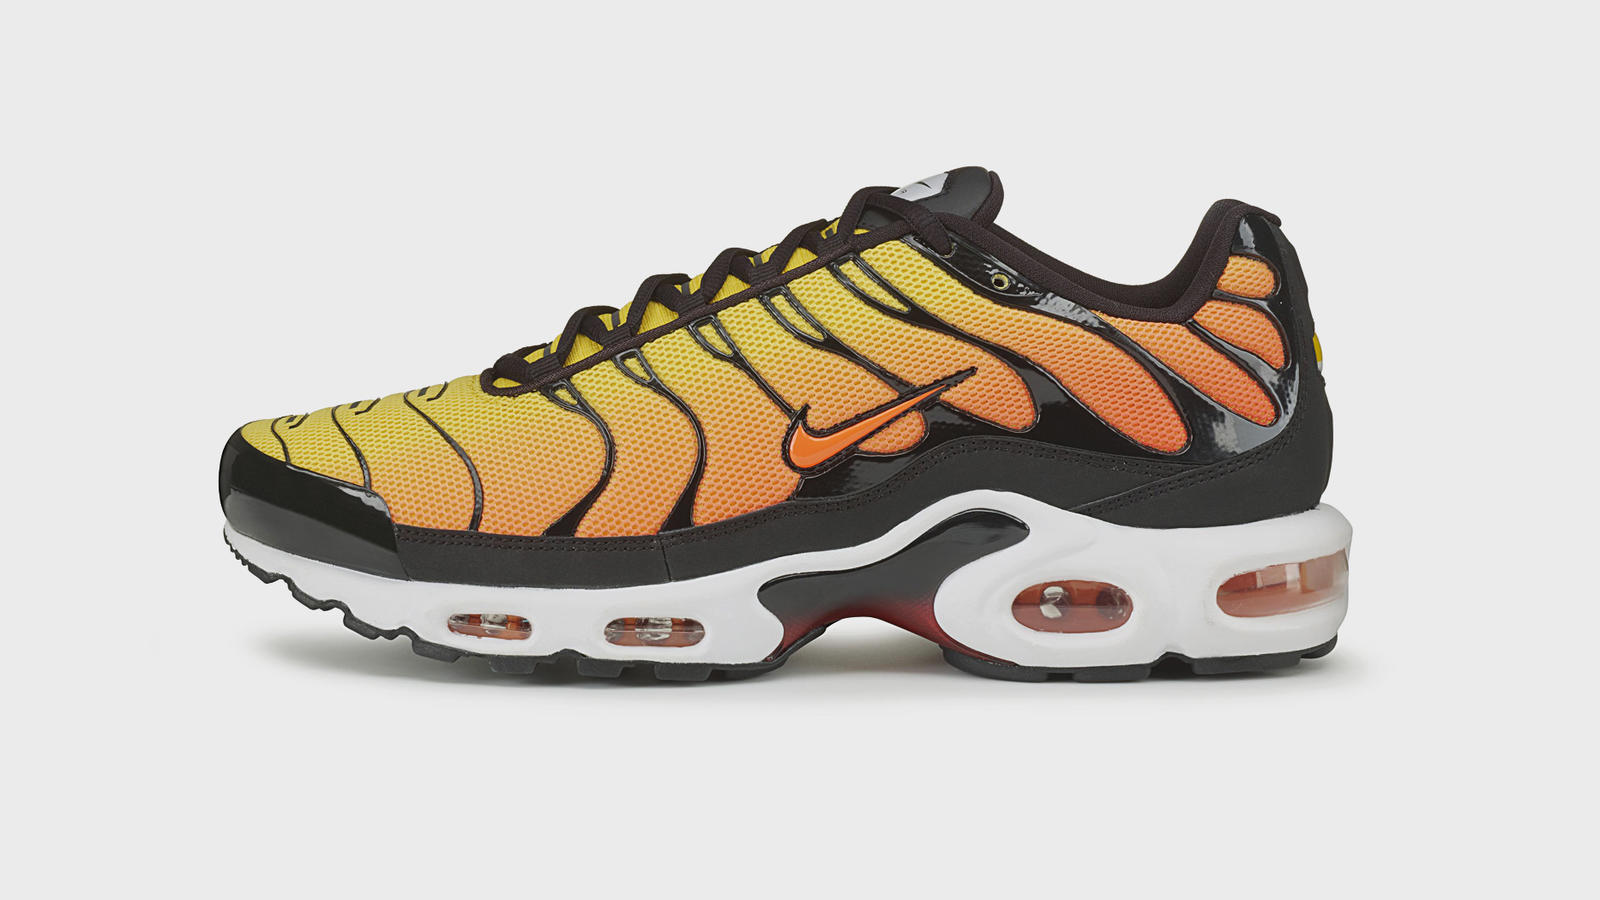 detailed look 27354 3e4cc The Untold Story of the Nike Air Max Plus 23